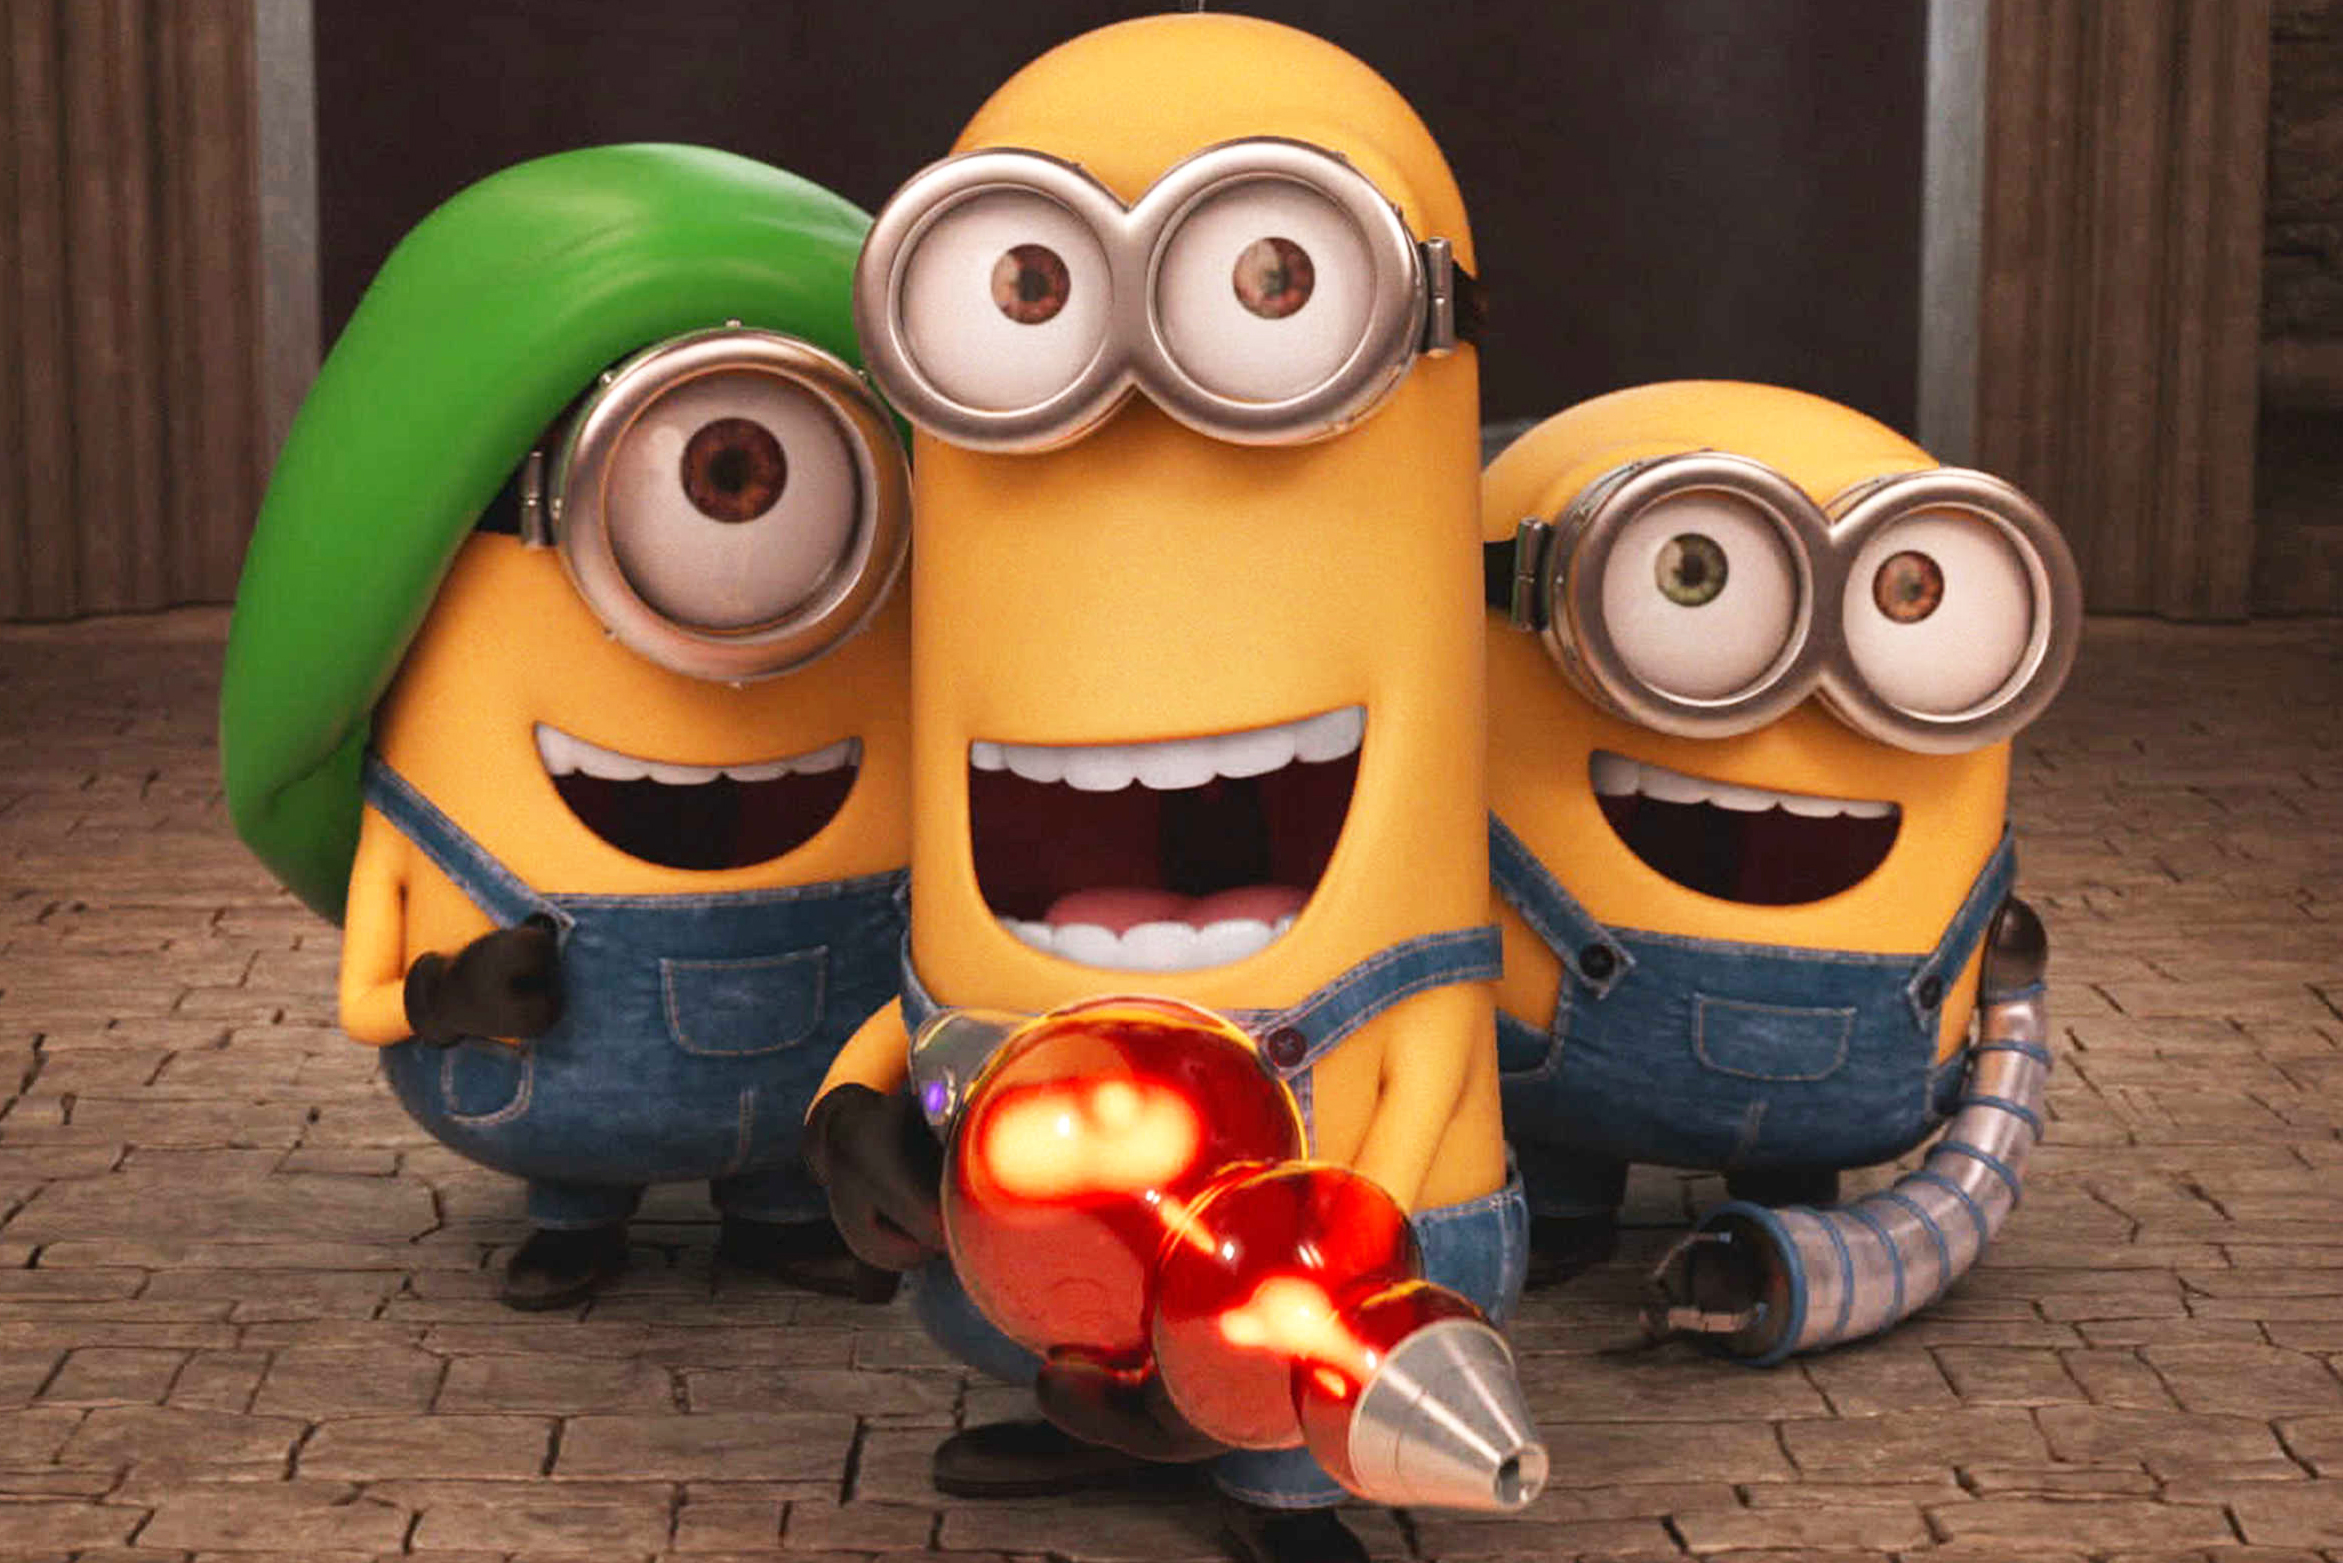 Minions Is Like Trying To Make A Band With 3 Ringos